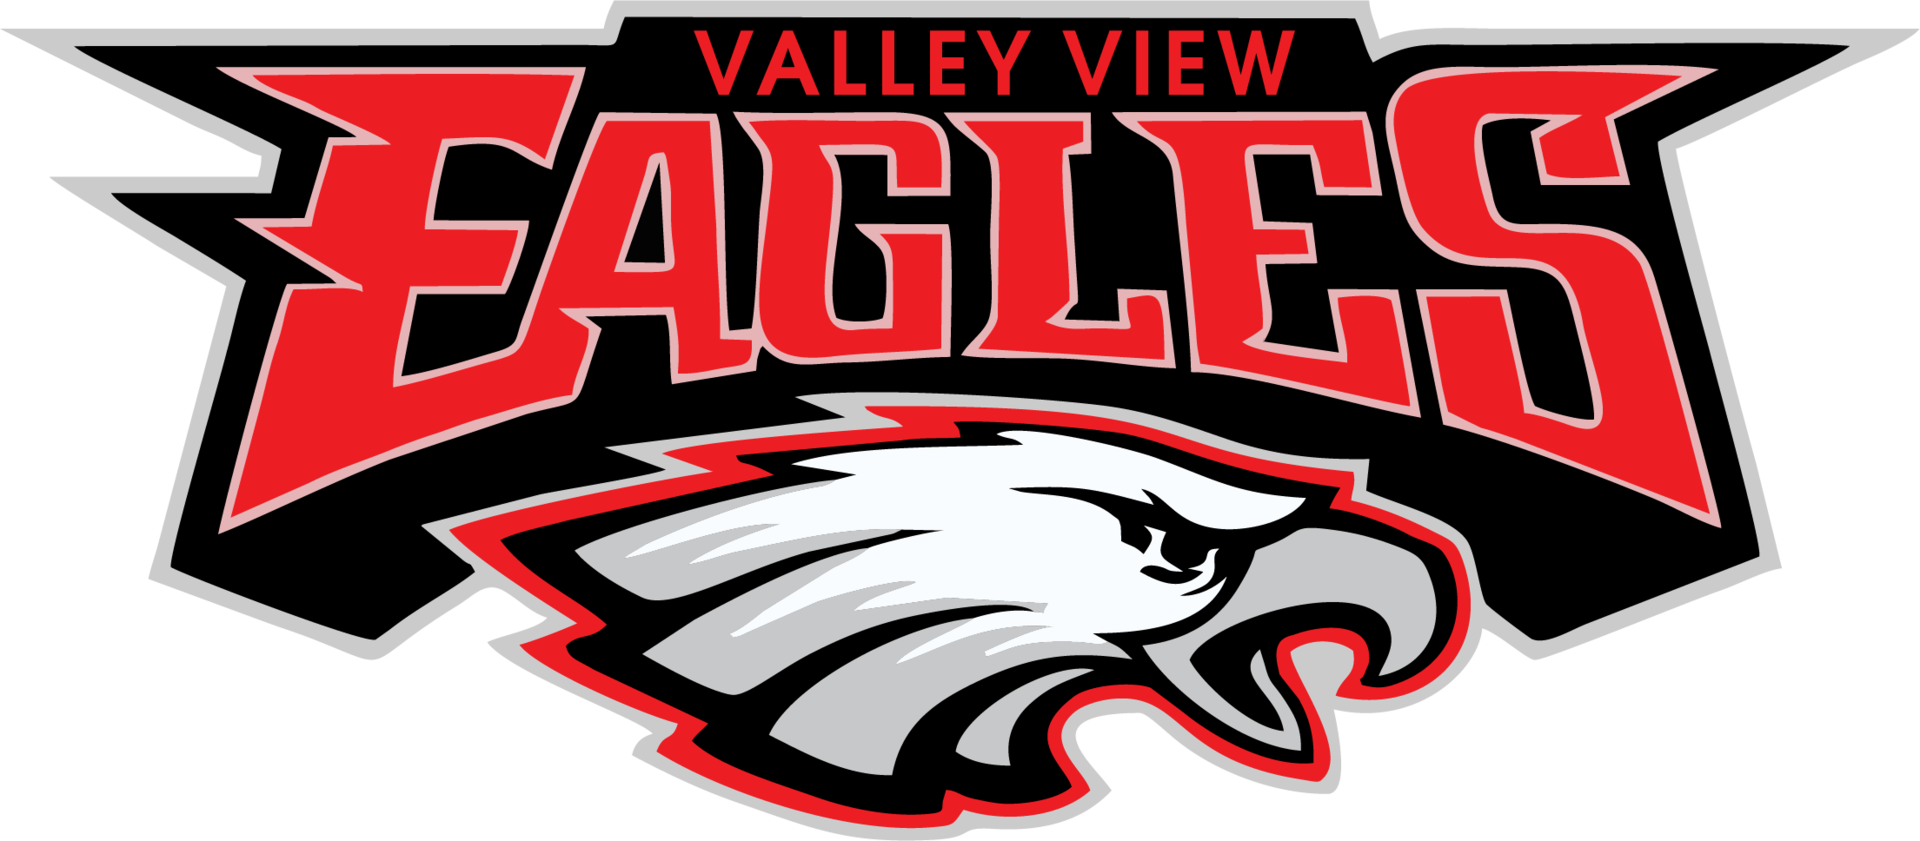 Valley View High logo